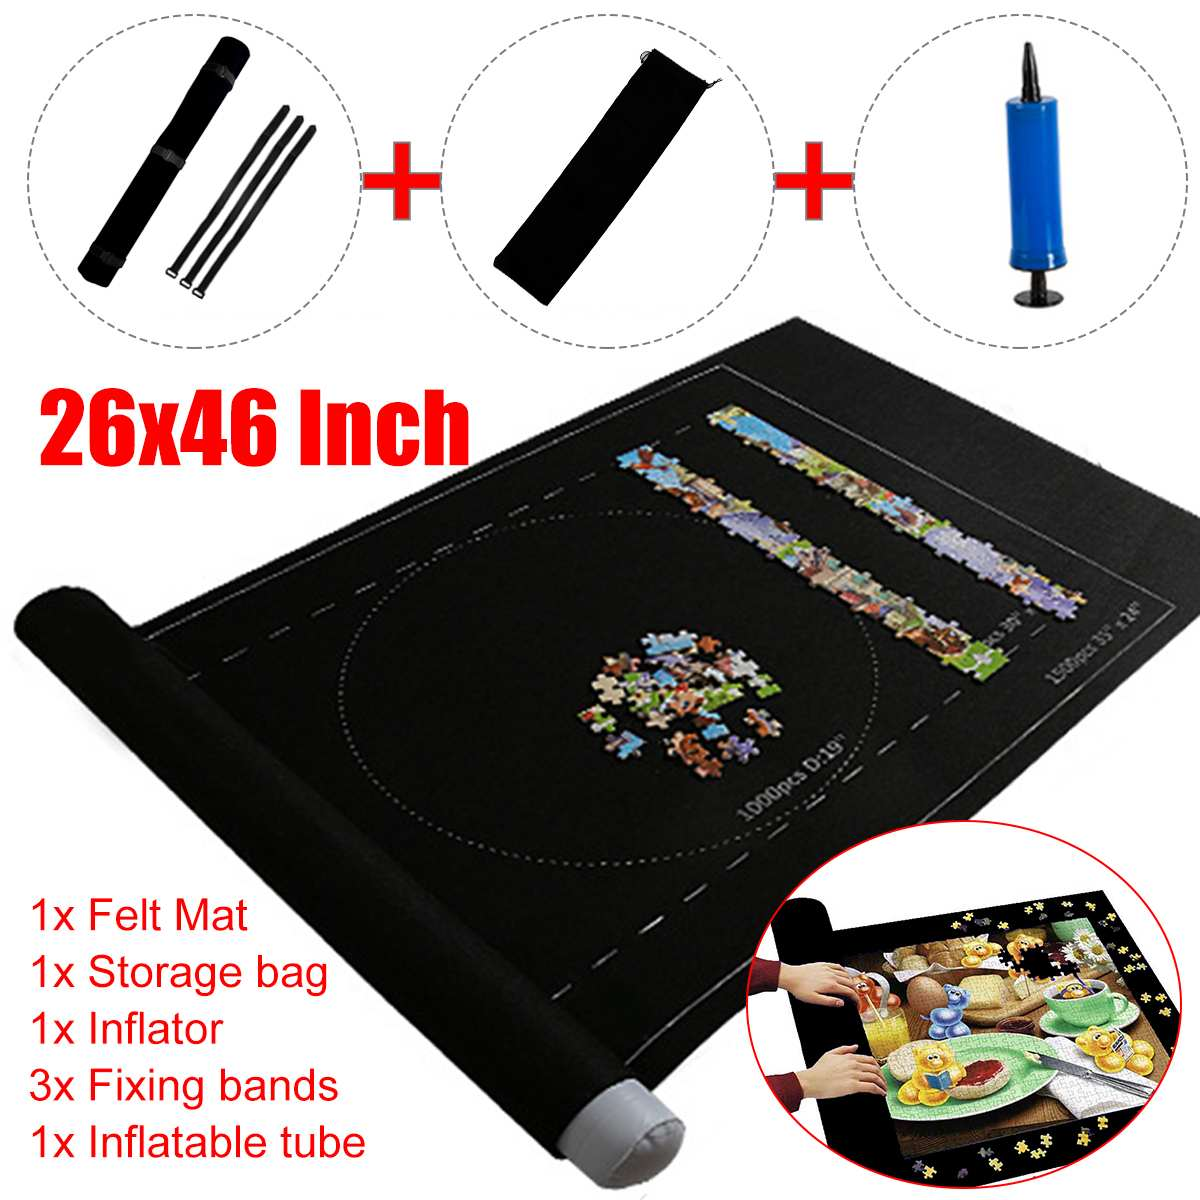 Puzzles Mat Jigsaw Roll Felt Mat Puzzles Play Blanket Large For Up To 1500 Pieces Puzzle Accessories Portable Travel Storage Bag